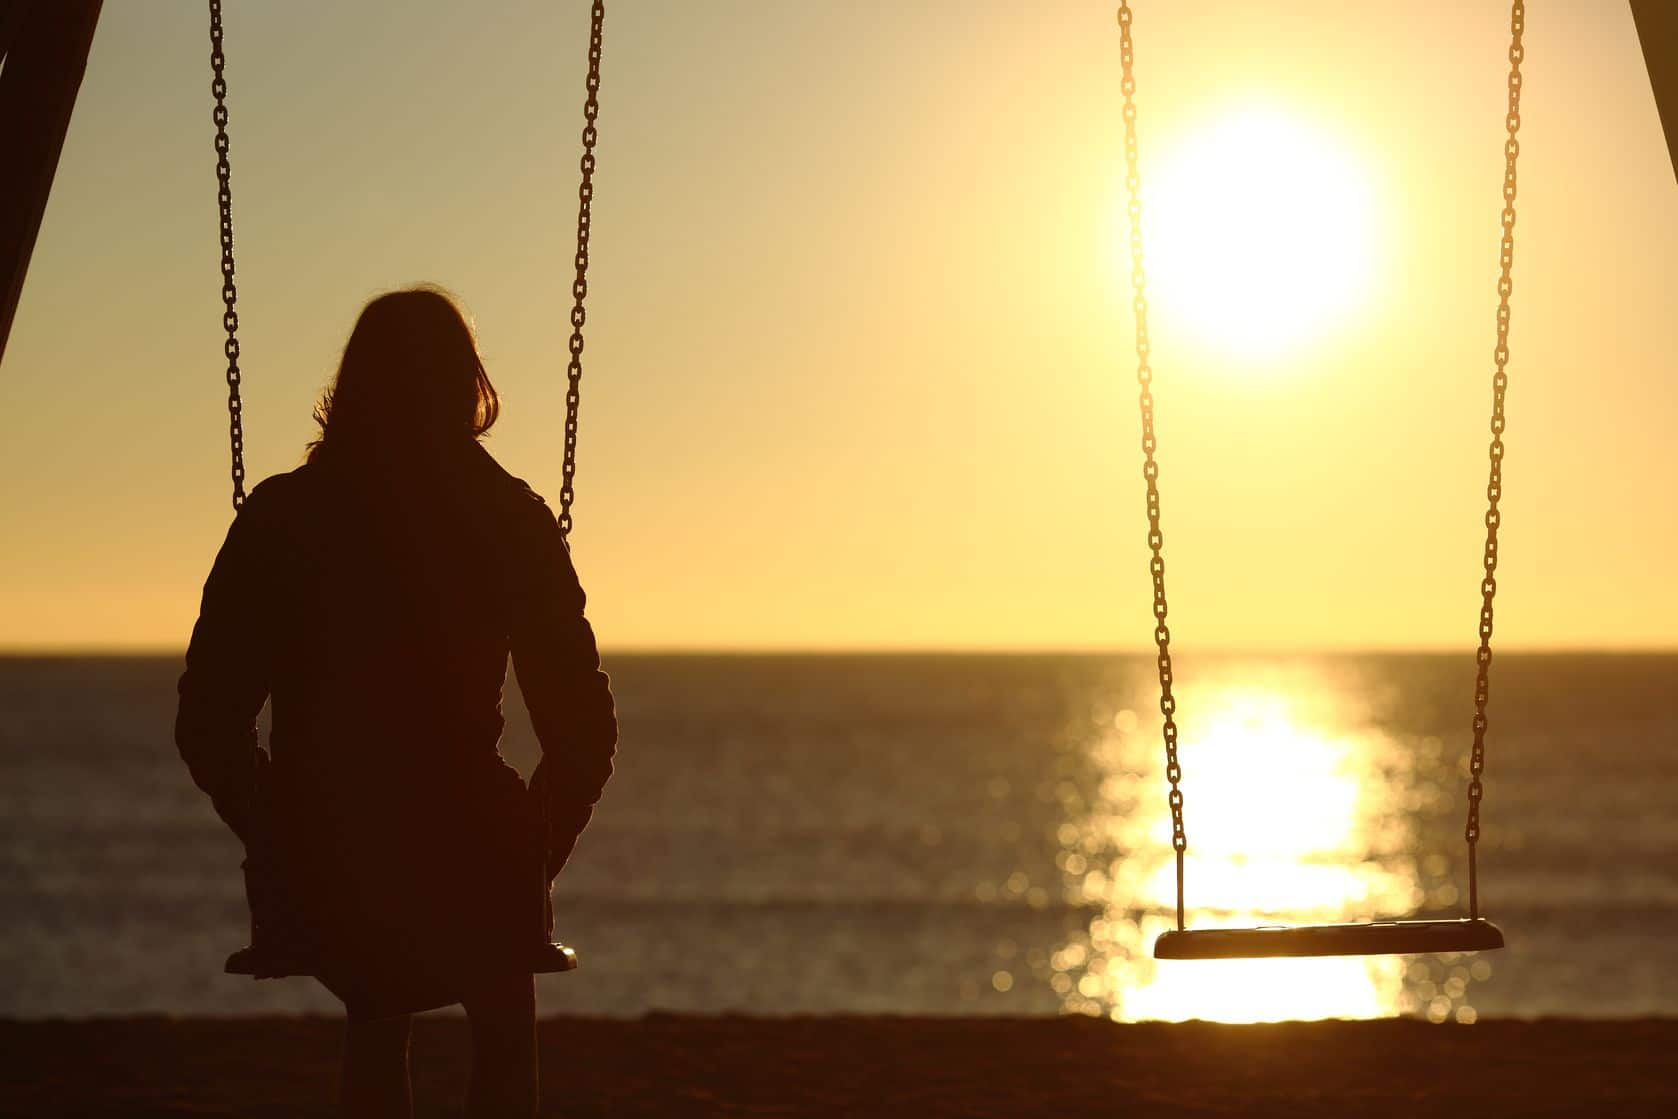 Sometimes stress can make us feel alone, like we're a kid again, sitting on the swings at the playground, staring into the sunset.